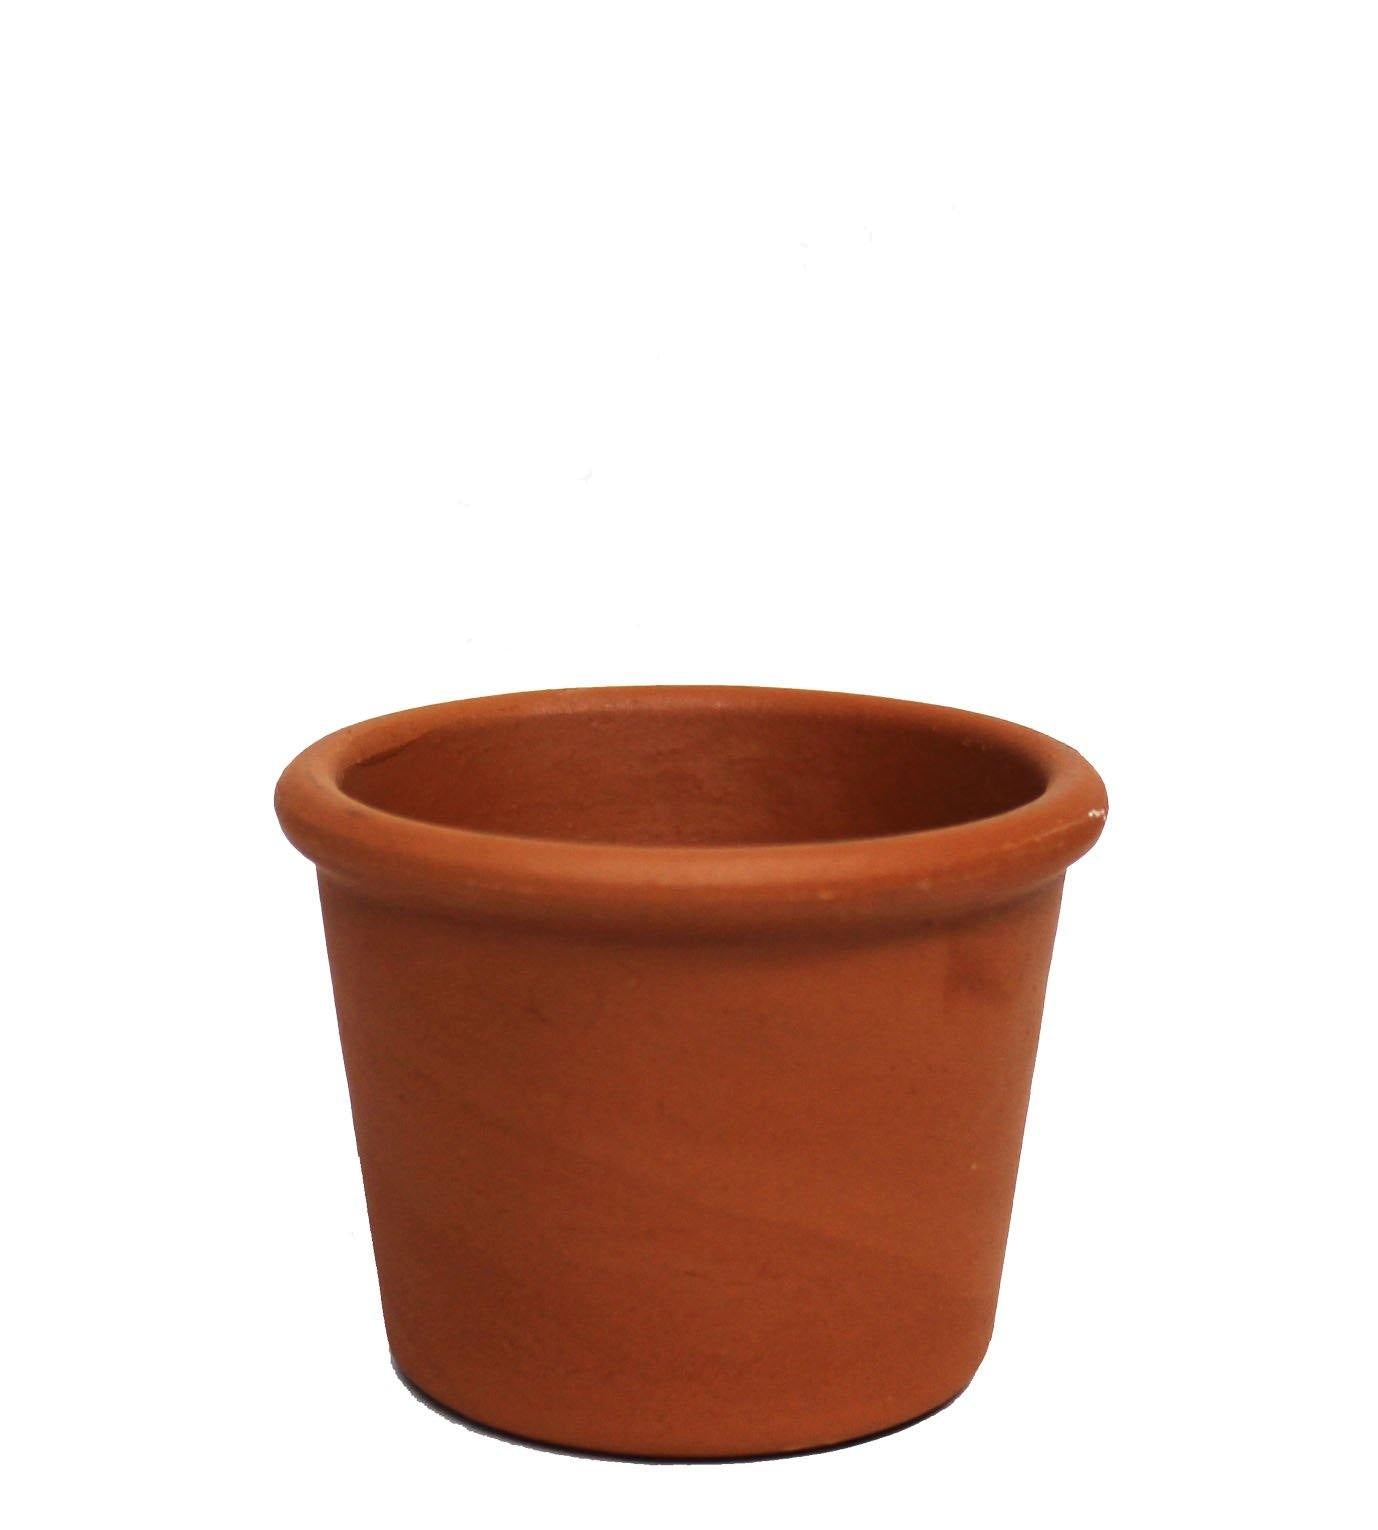 Round Clay Pot - Geoponics Inc